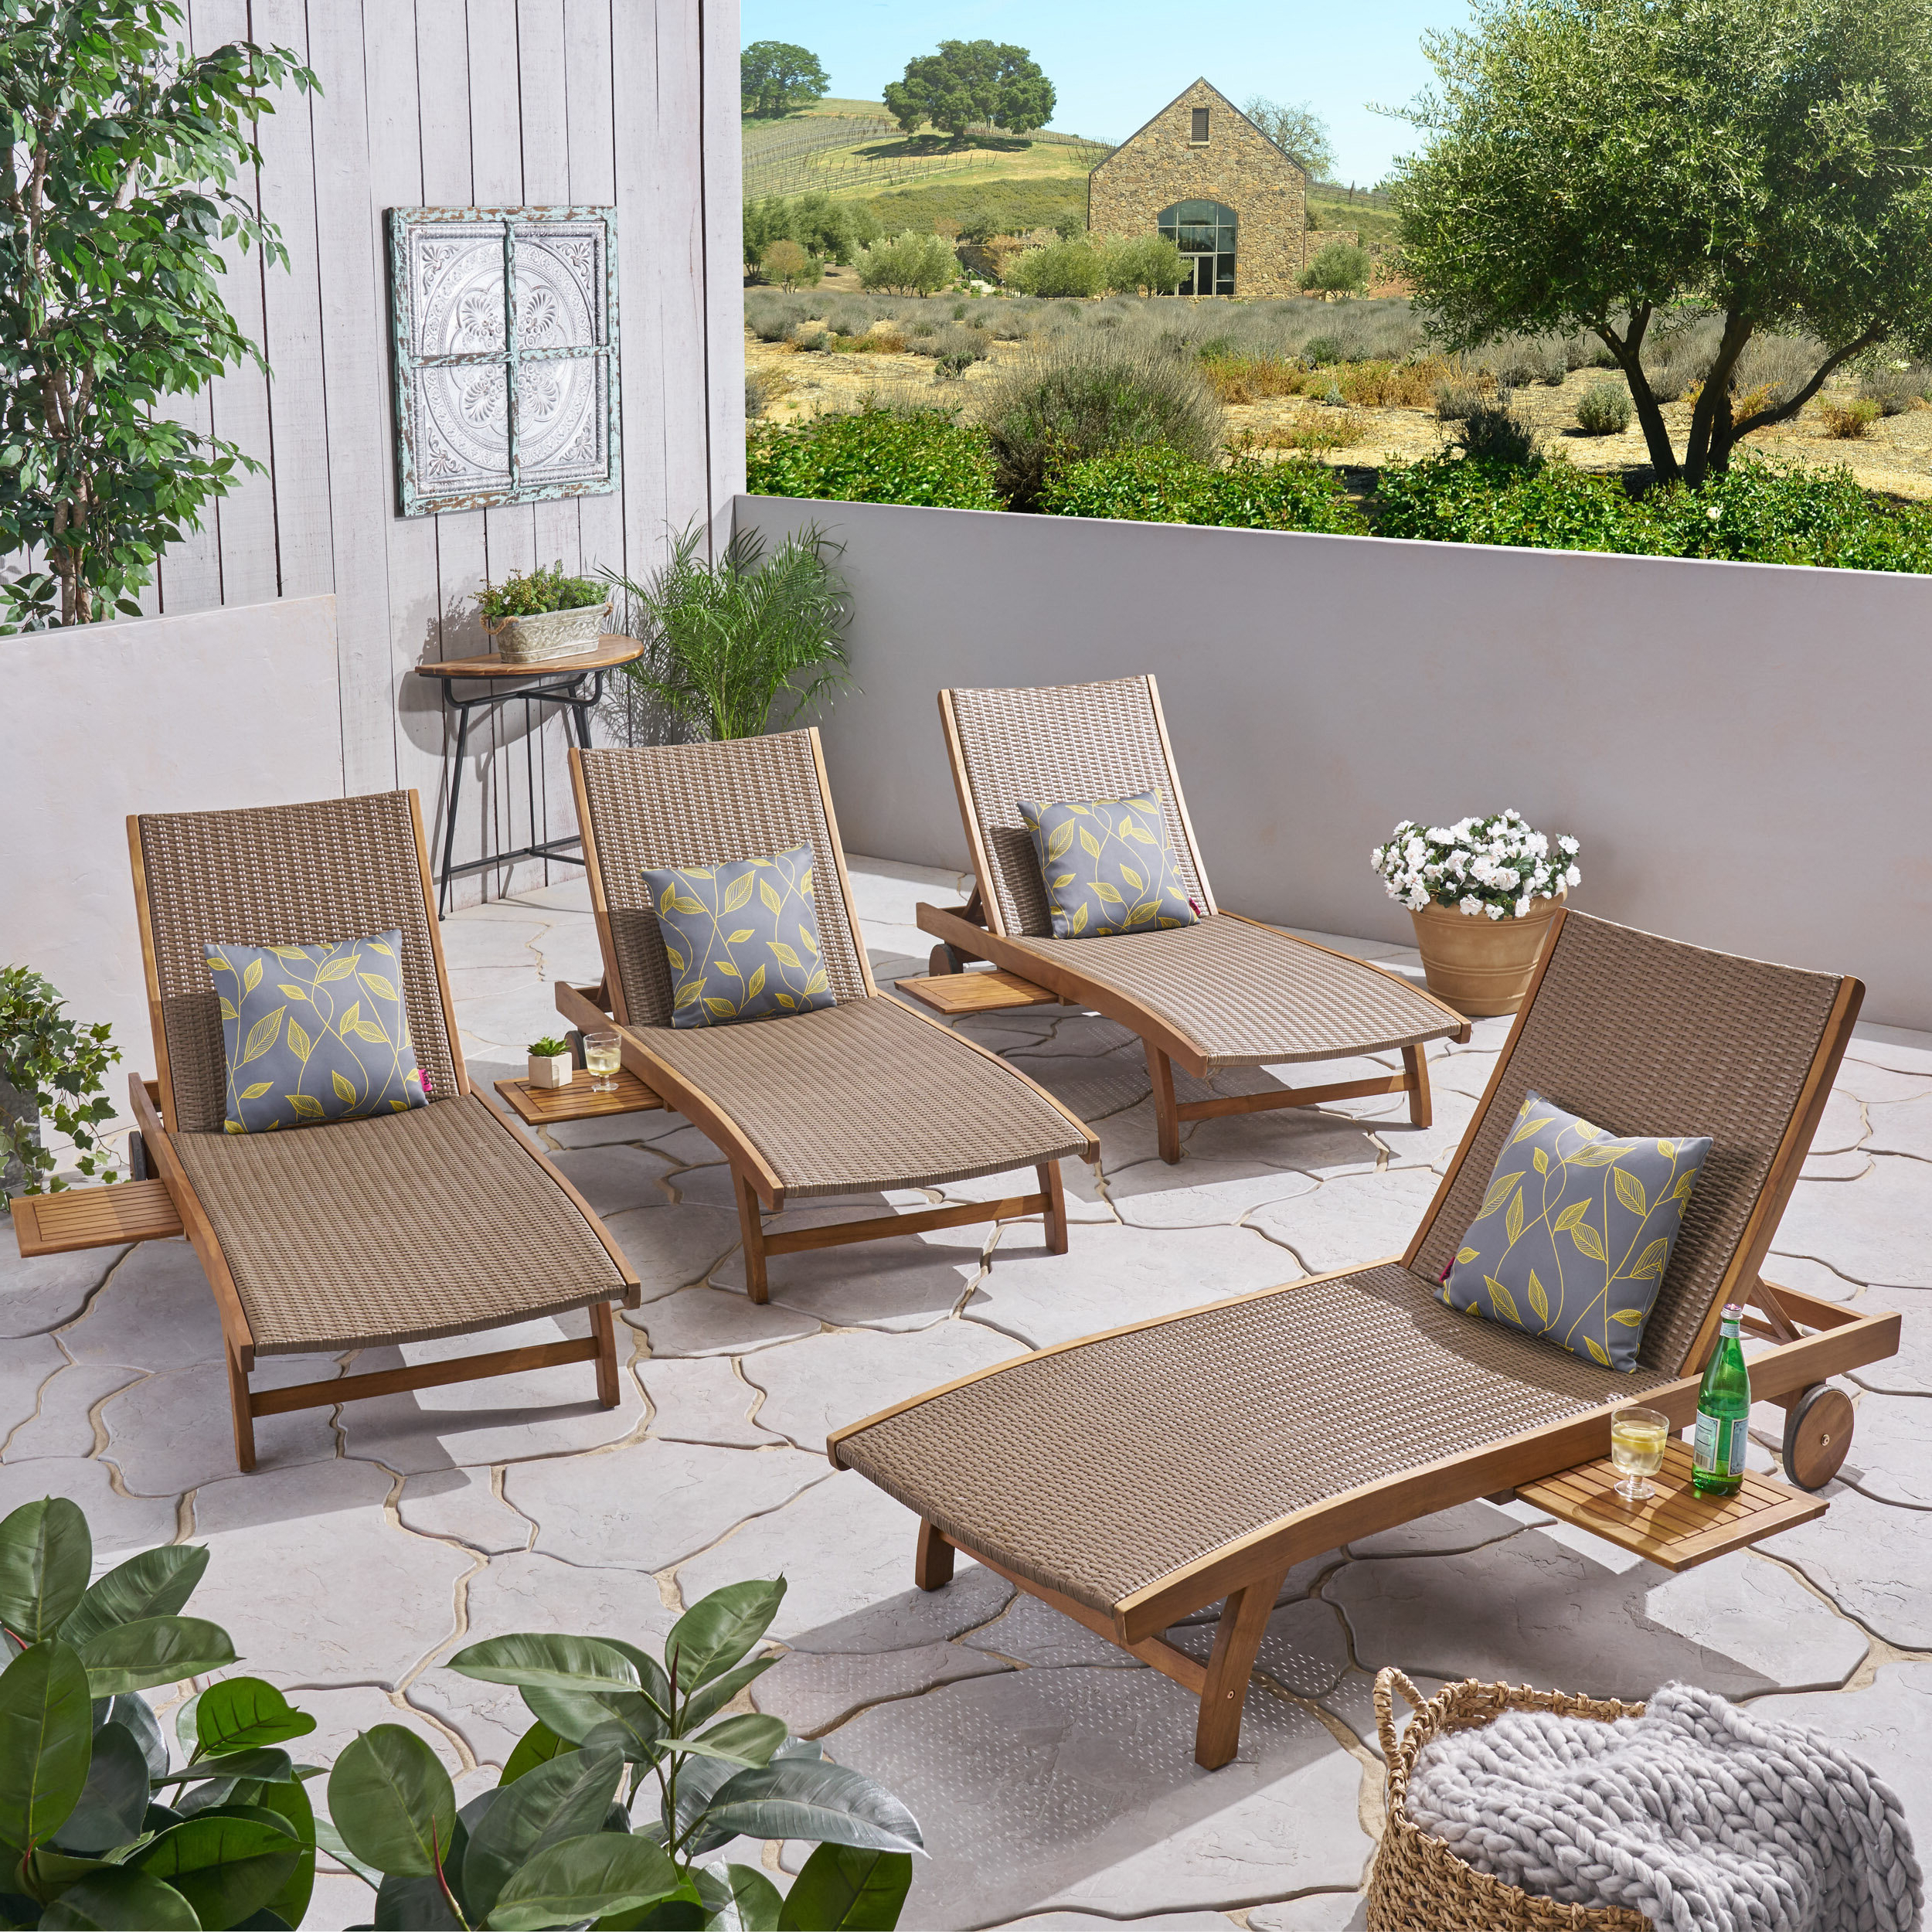 Cleghorn Reclining Chaise Lounge For 2019 Outdoor Rustic Acacia Wood Chaise Lounges With Wicker Seats (View 5 of 25)